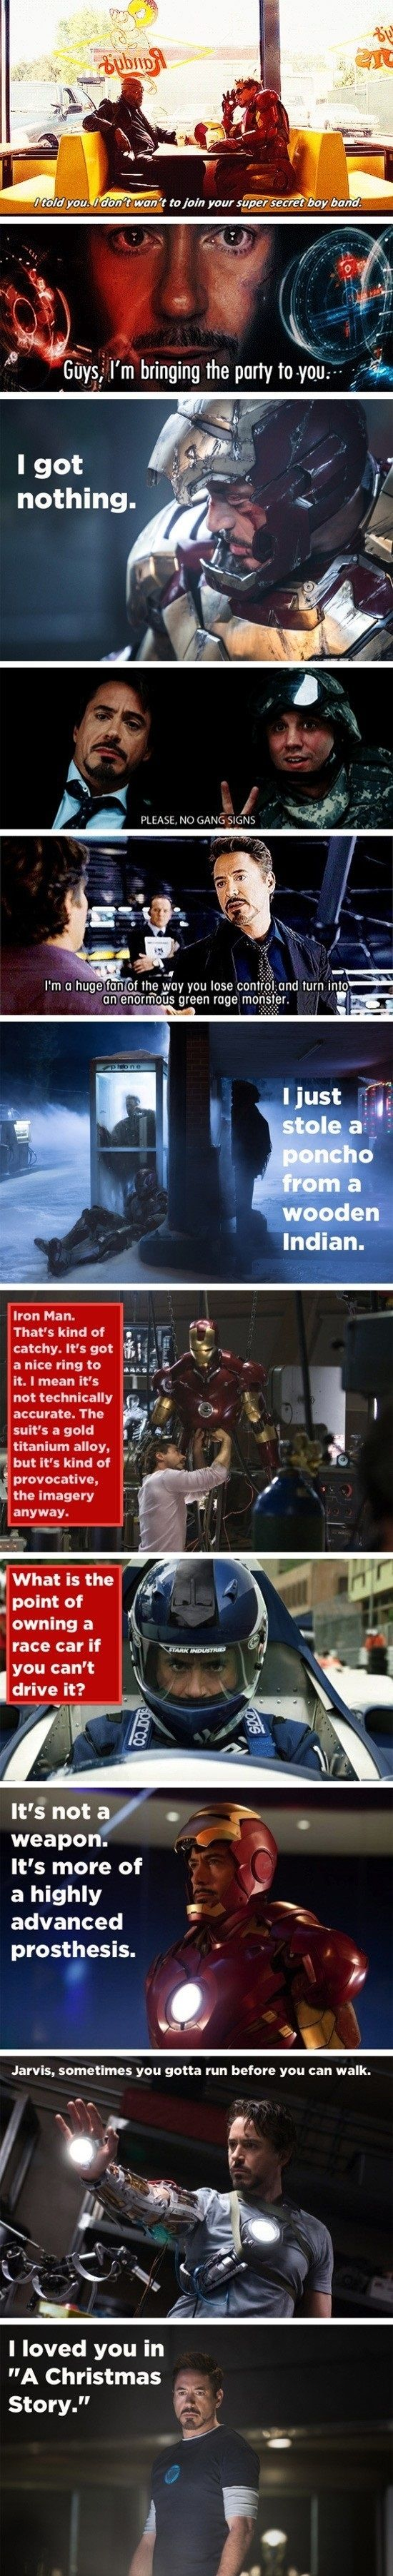 Tony Stark's witty remarks // funny pictures - funny photos - funny images - funny pics - funny quotes - #lol #humor #funnypictures